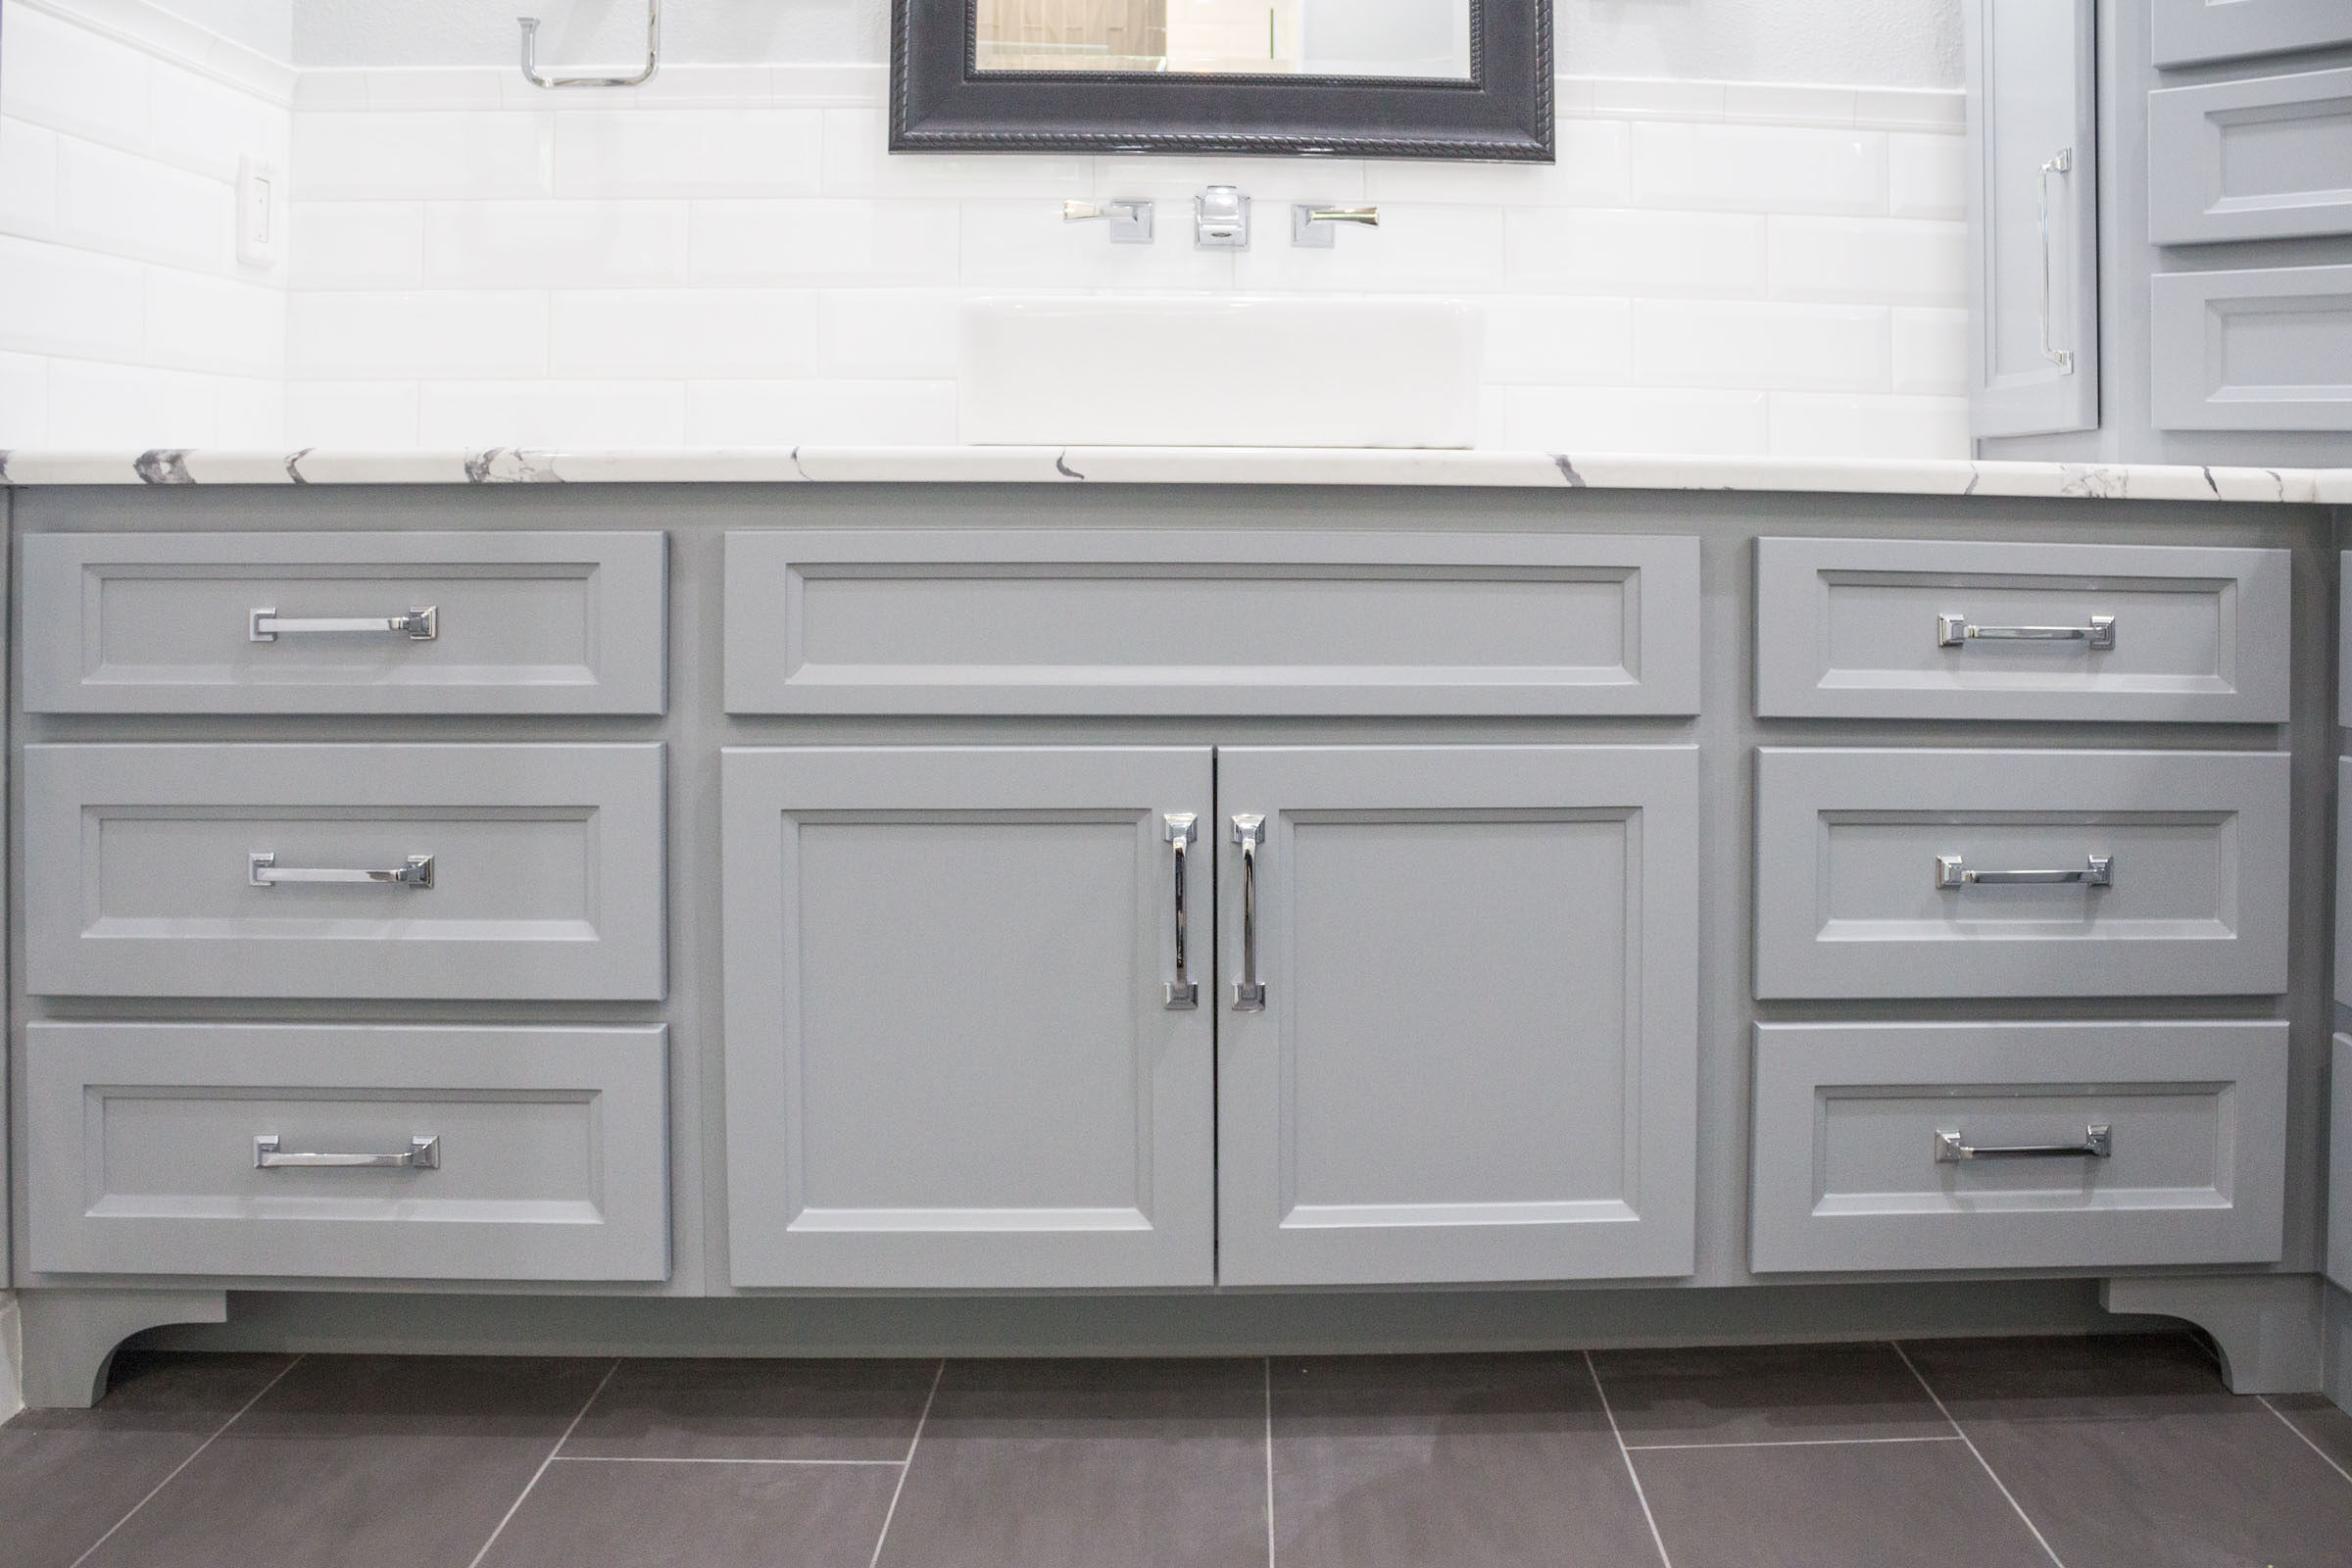 Contemporary bathroom remodel with grey cabinets, chrome hardware, white subway tile backsplash, and white/grey granite countertops